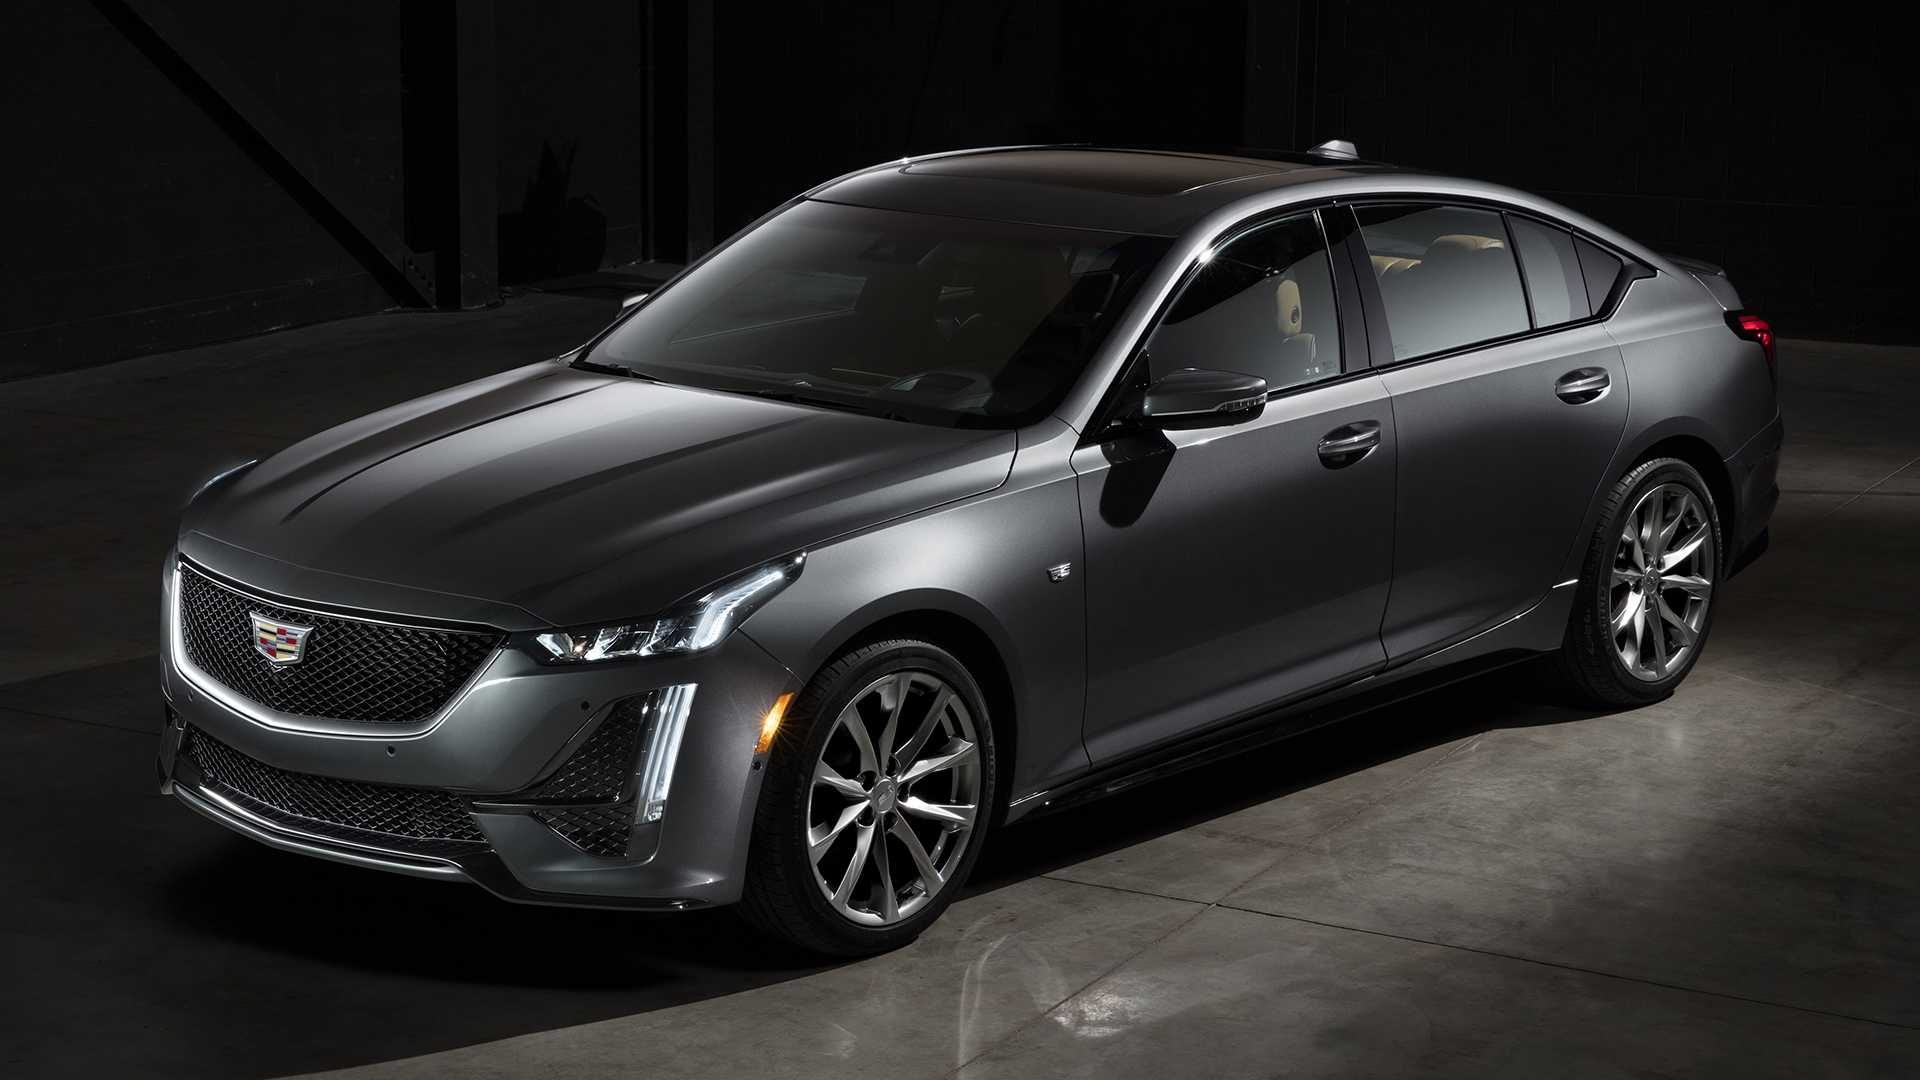 50 New 2020 Cadillac Ct5 Interior Images